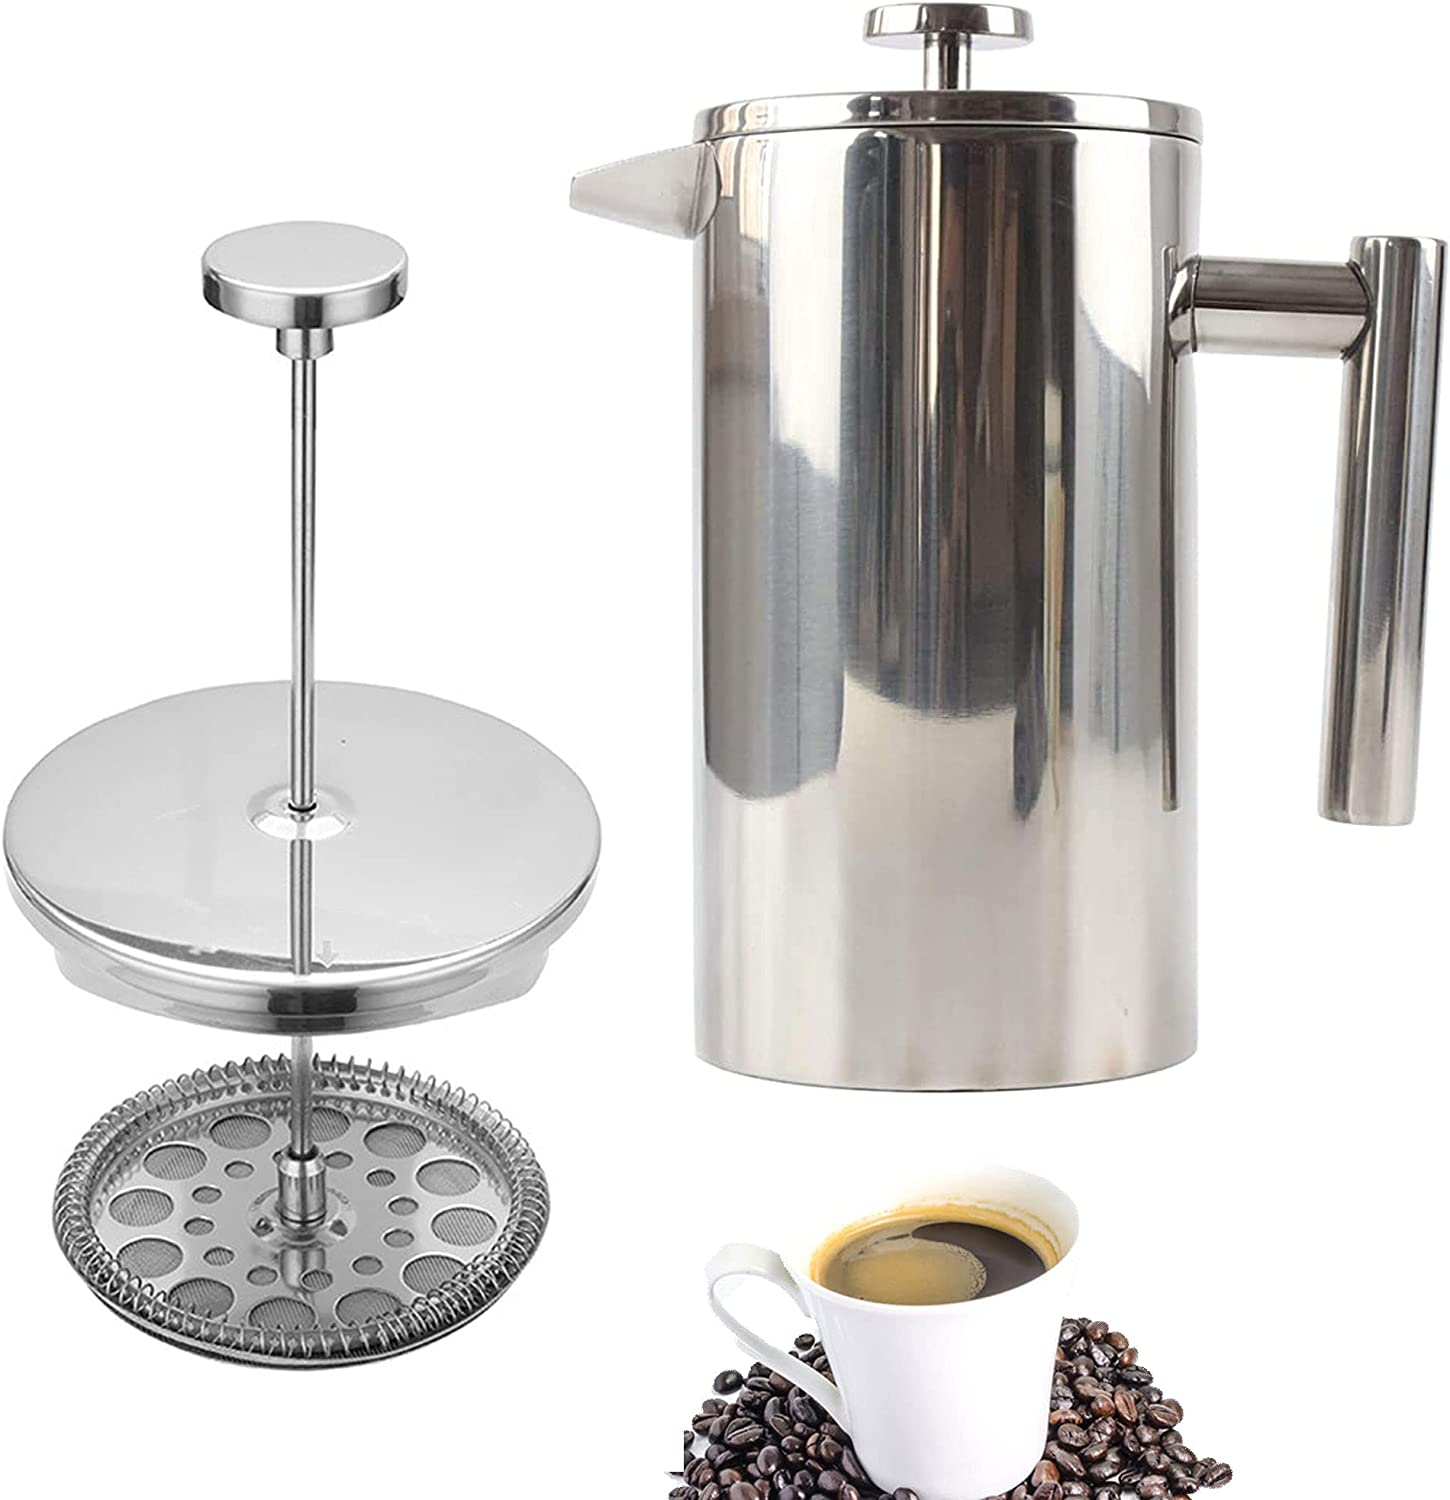 JSZY French Press Coffee Maker Portable quality Popular product assurance Walled Insulated Double